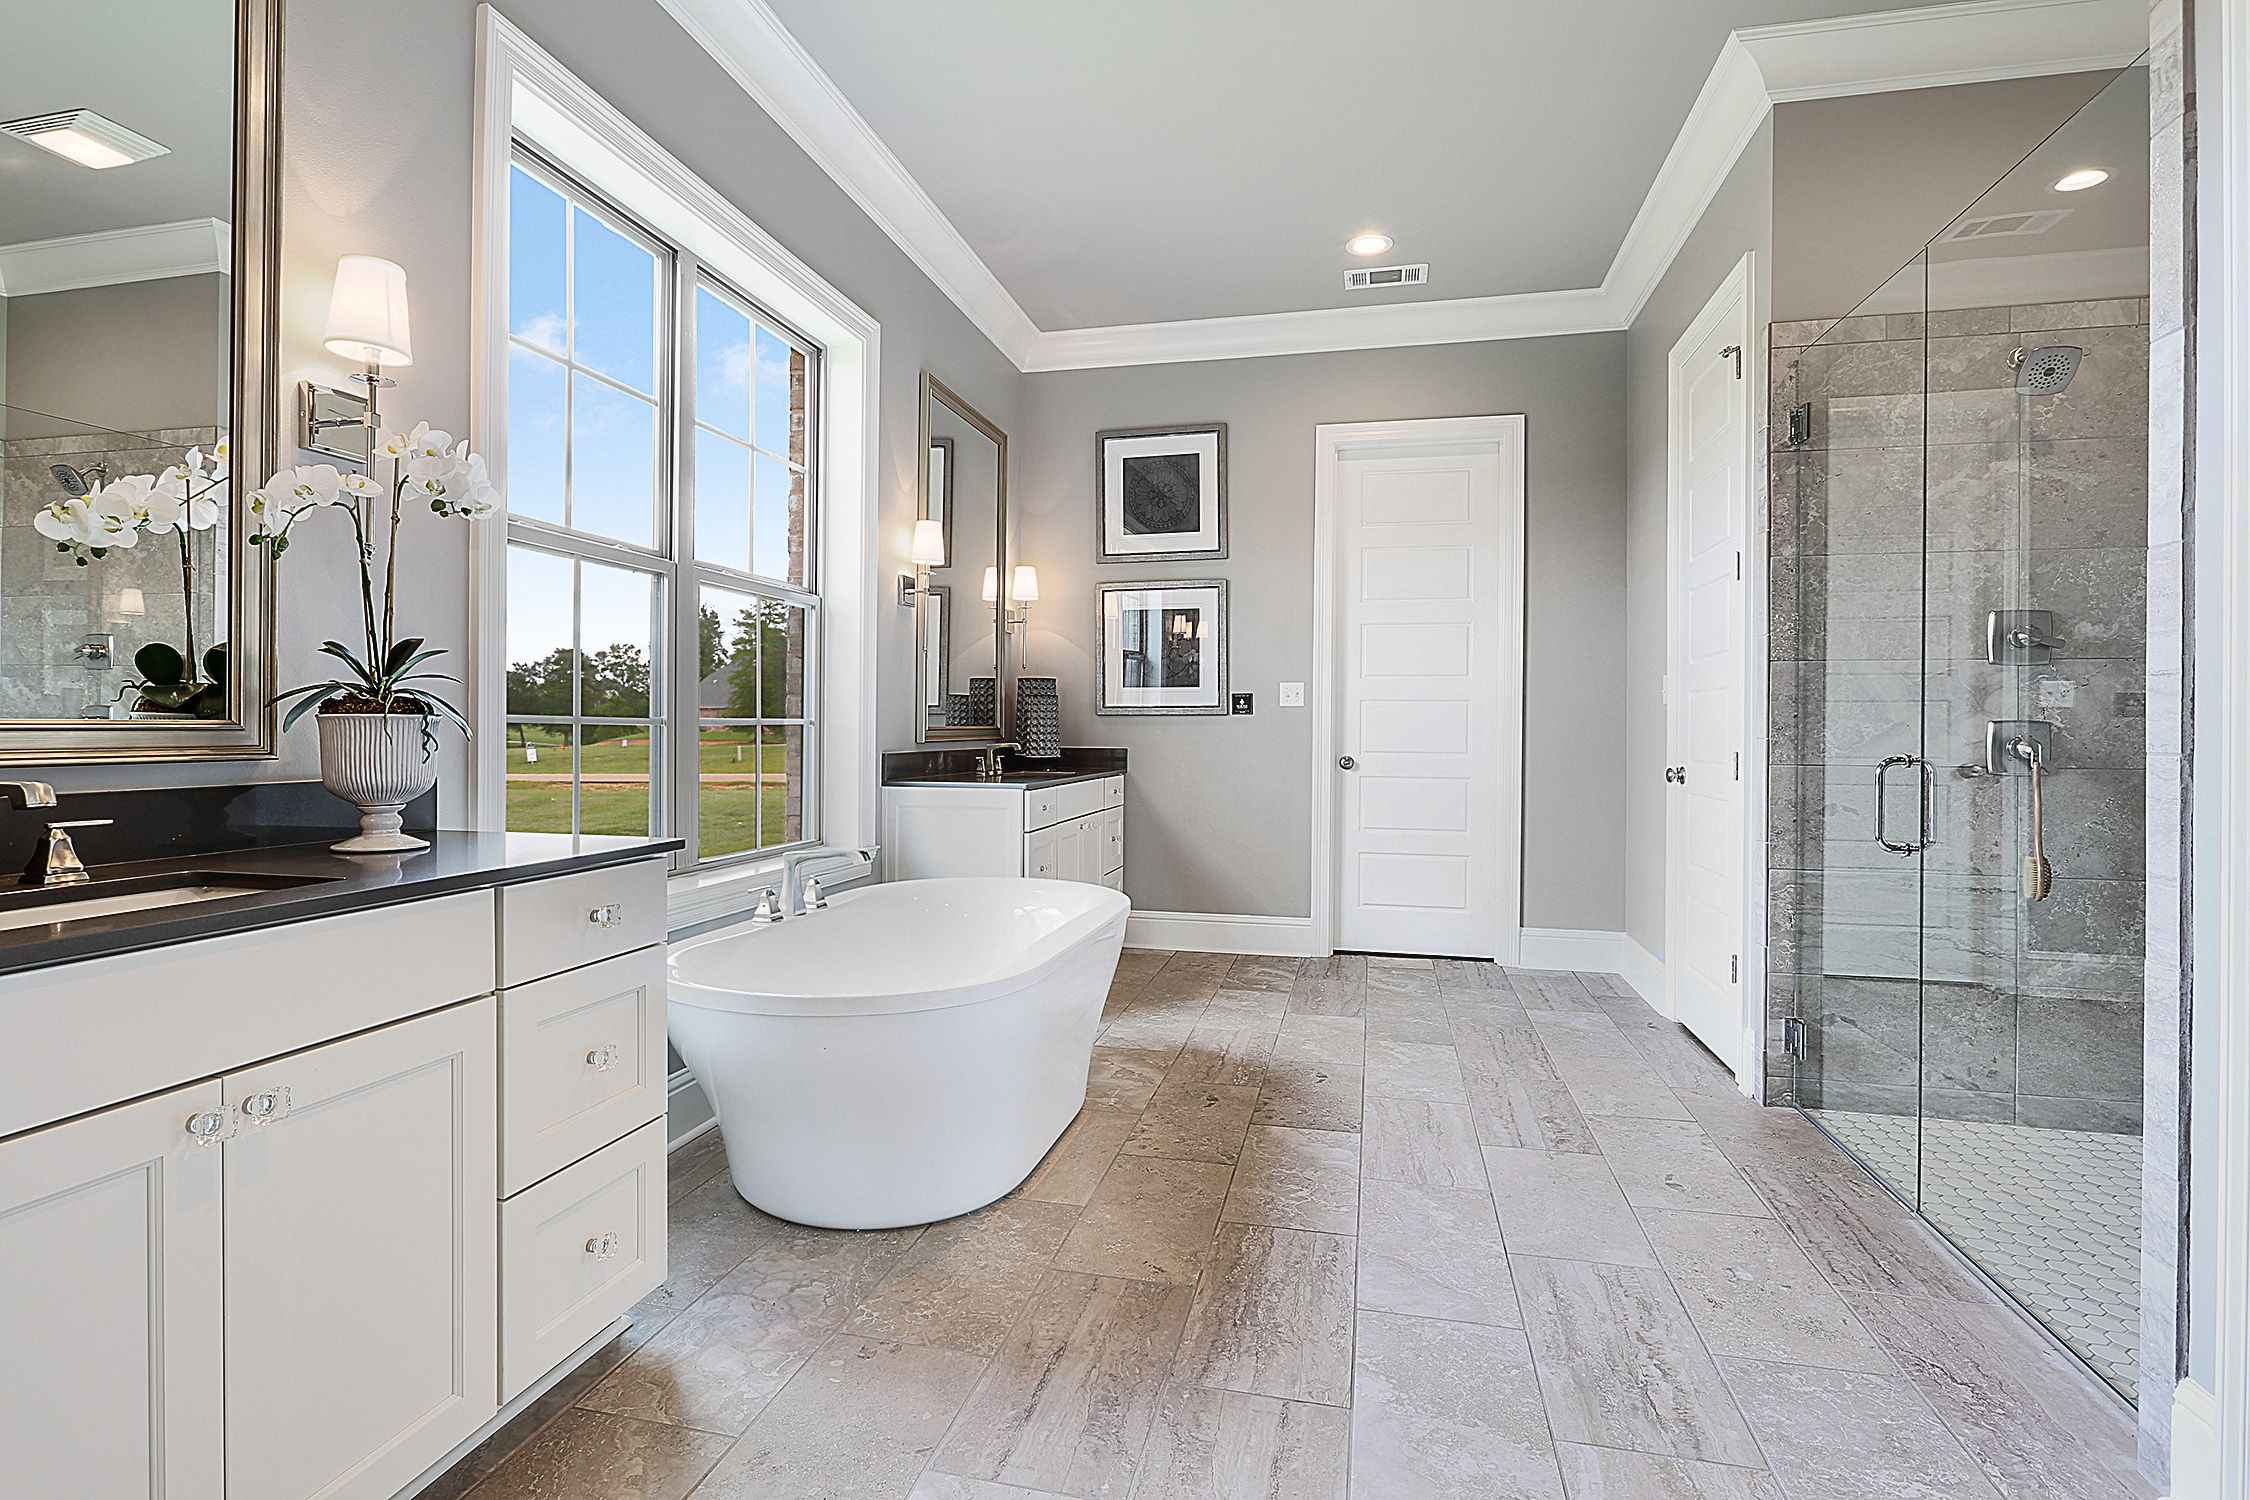 Bathroom featured in the Turnberry By Highland Homes in New Orleans, LA